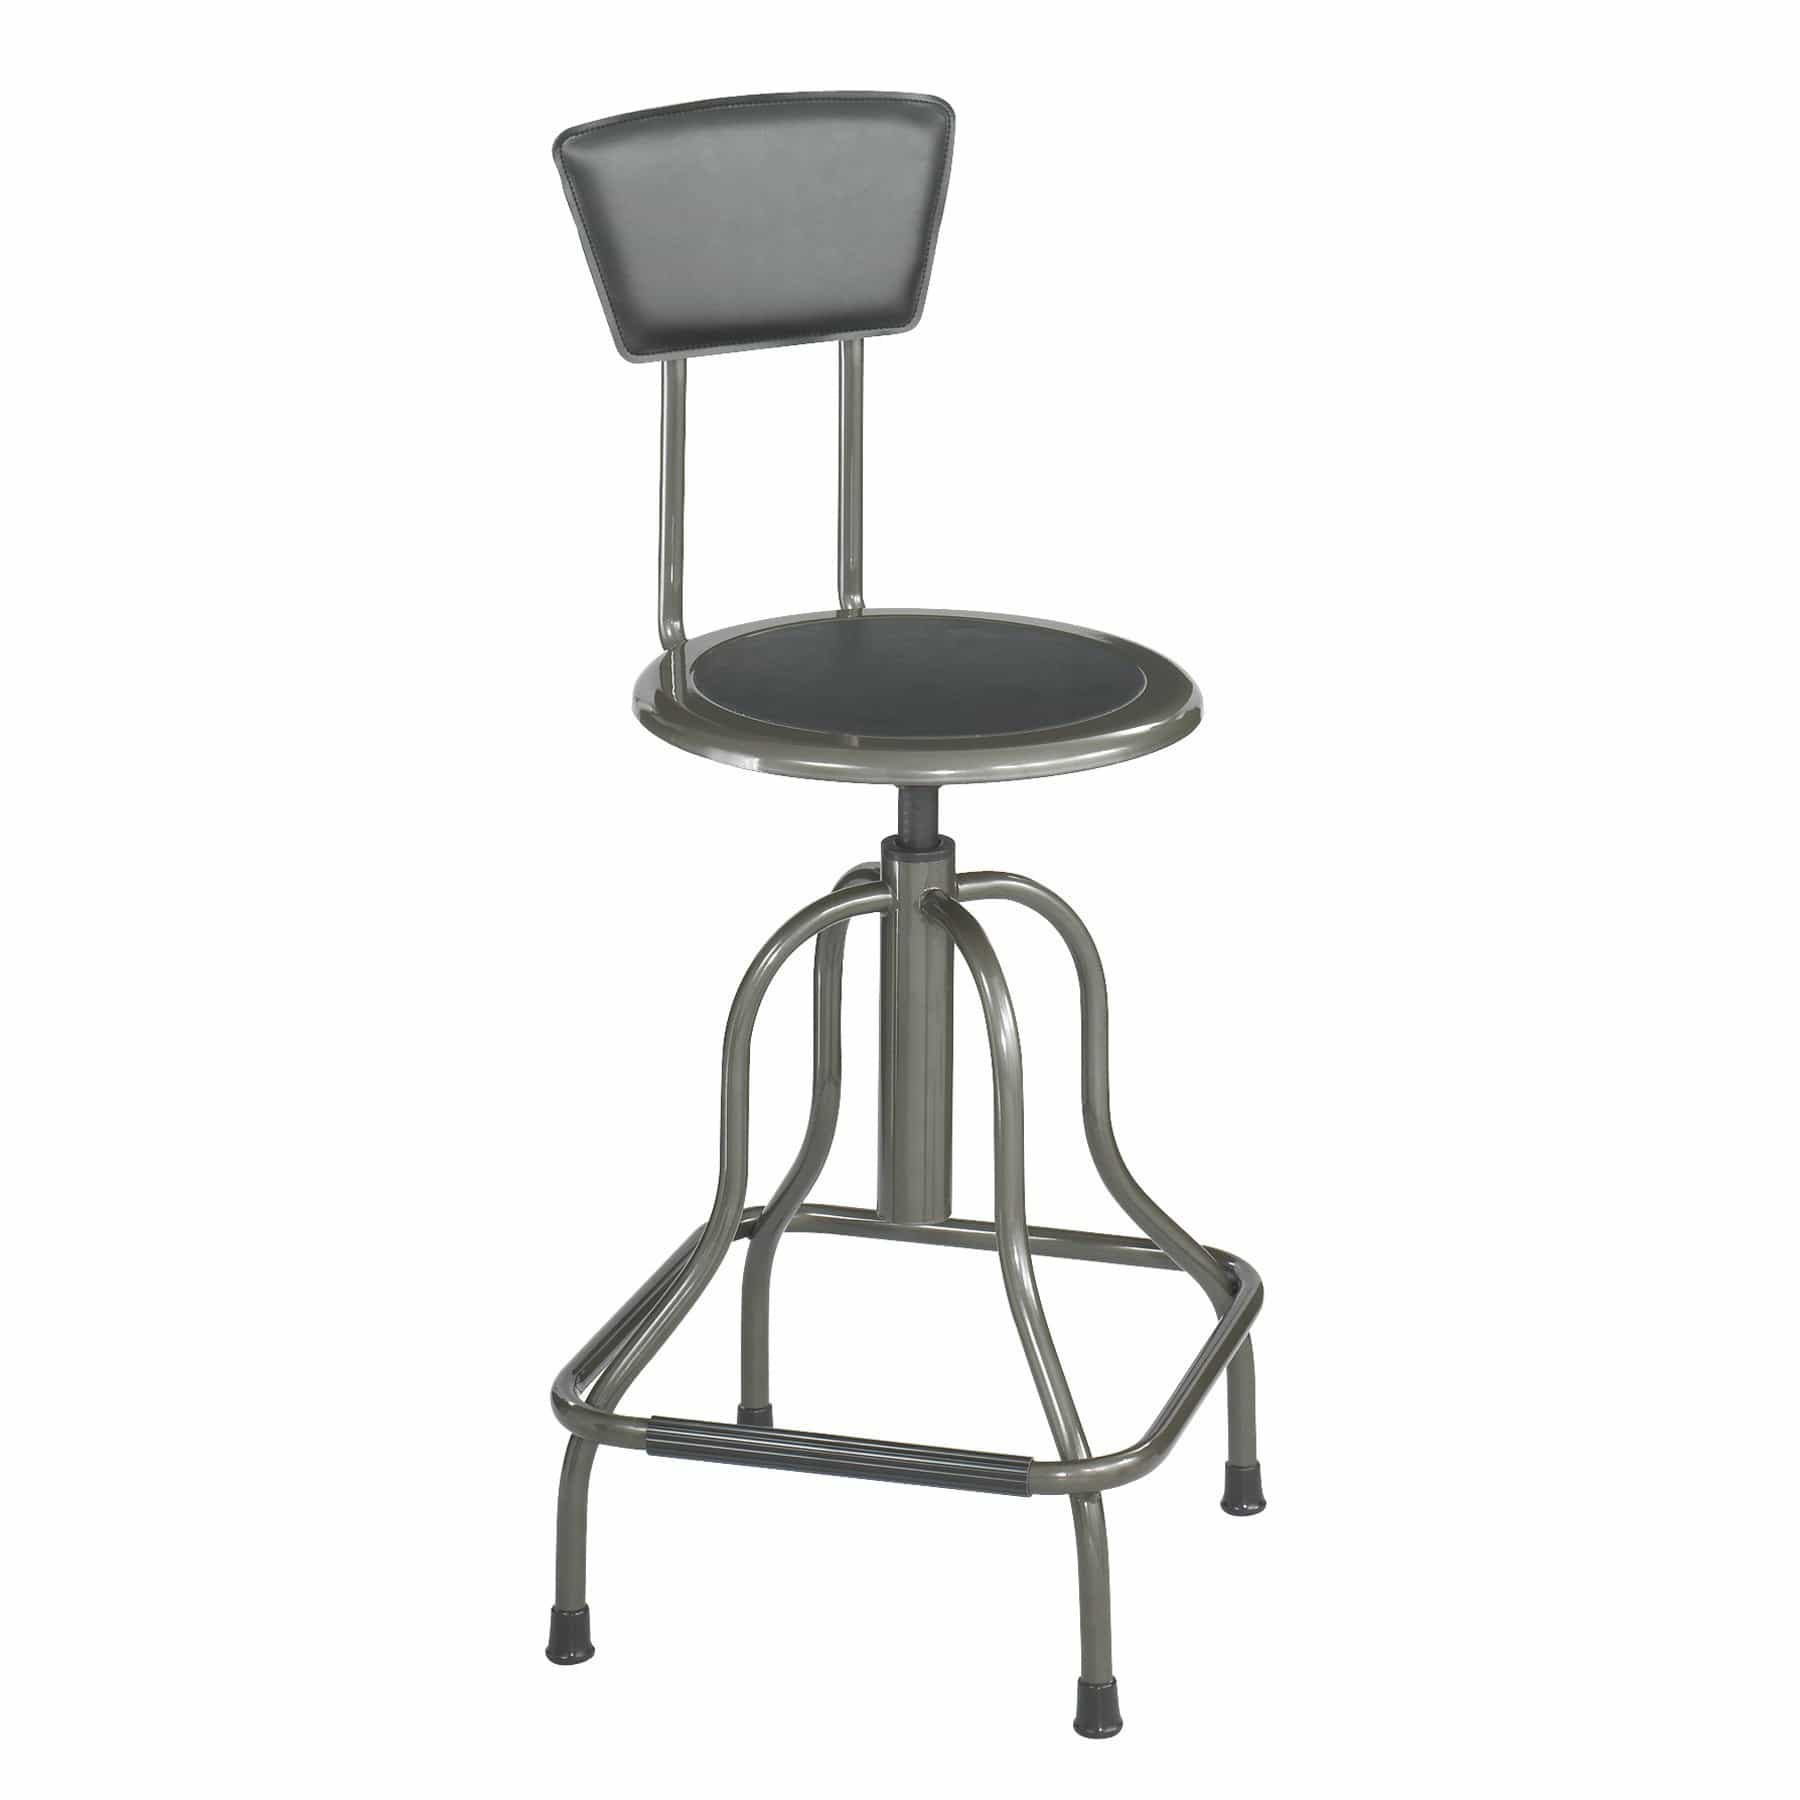 bedinhome - Industrial Seating 250 lbs Capacity Steel Stool With Diesel High Base Back - Safco - Stool